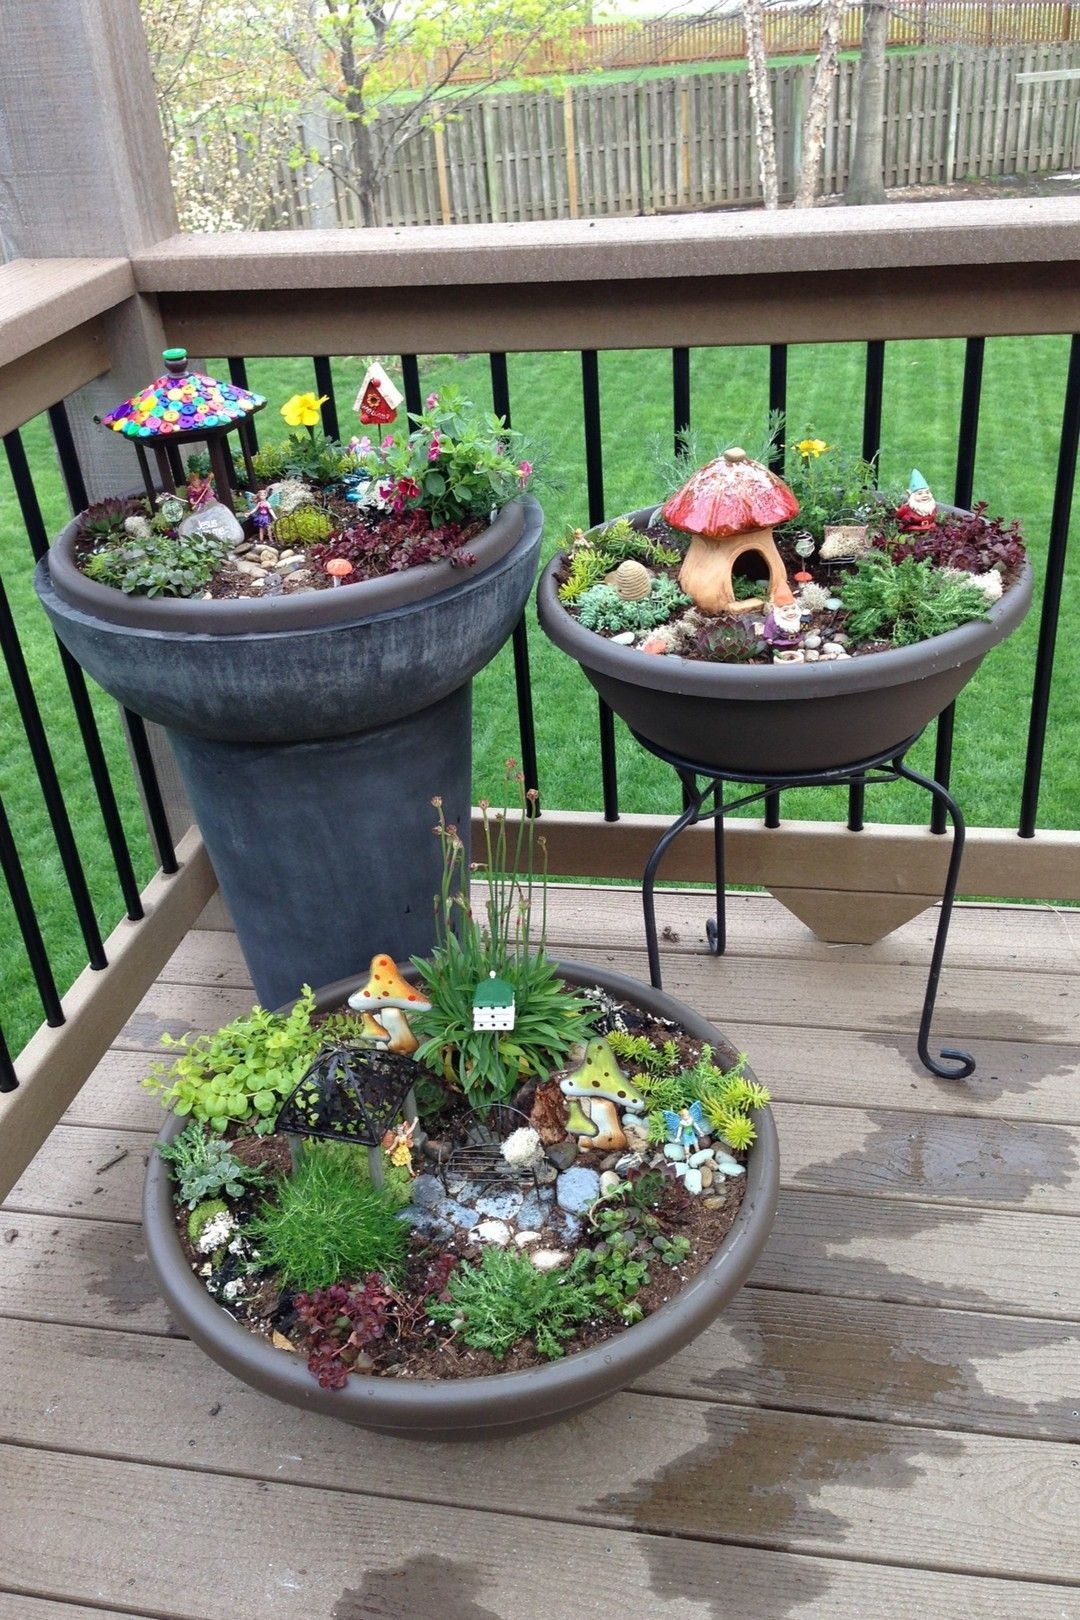 Diy garden ideas pinterest  awesome  Magical and Best Plants DIY Fairy Garden Ideas